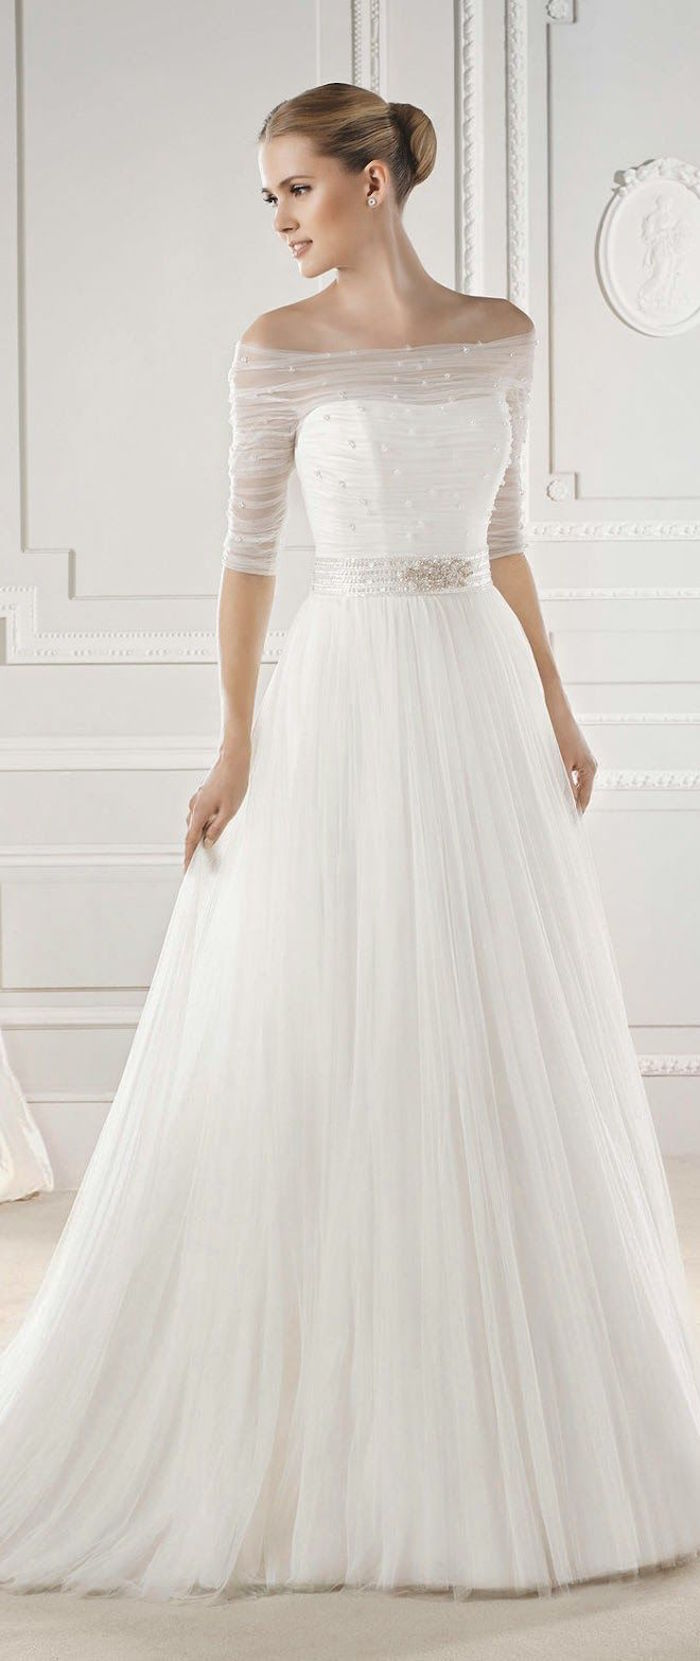 Elegance Of   Wedding Dresses : Simple wedding dresses with elegance modwedding